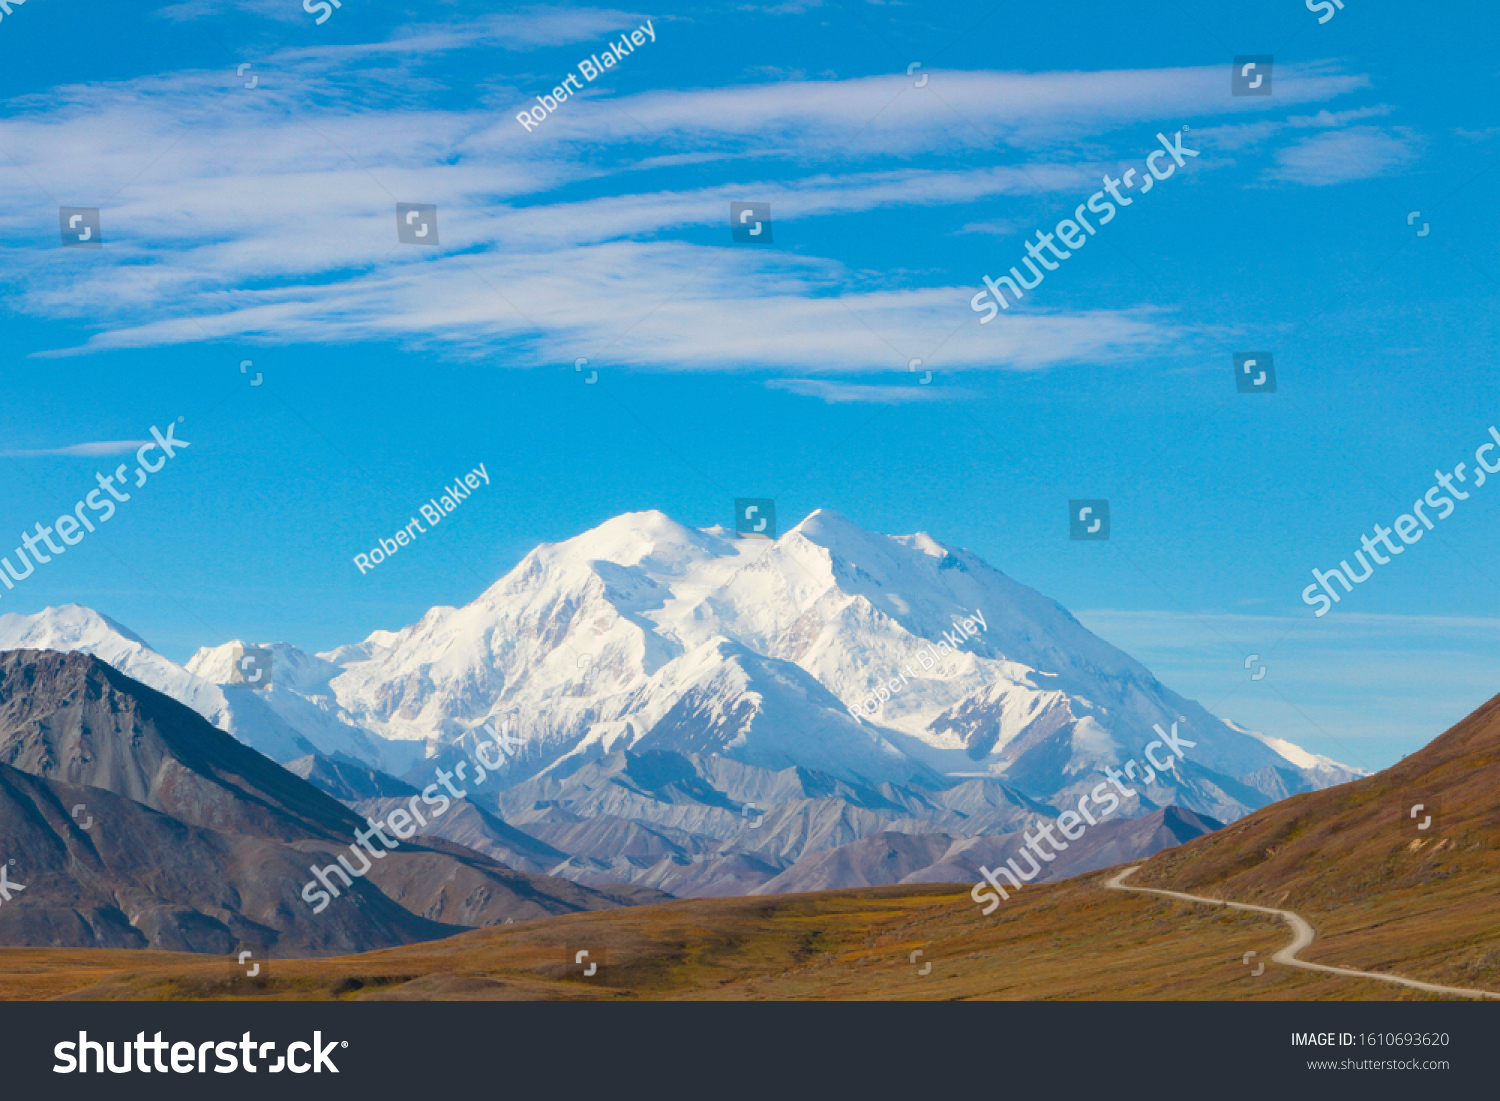 Winding Road Leading to Denali Mountain in Alaska With Blue Sky and Cloud Floating Above the Mountain